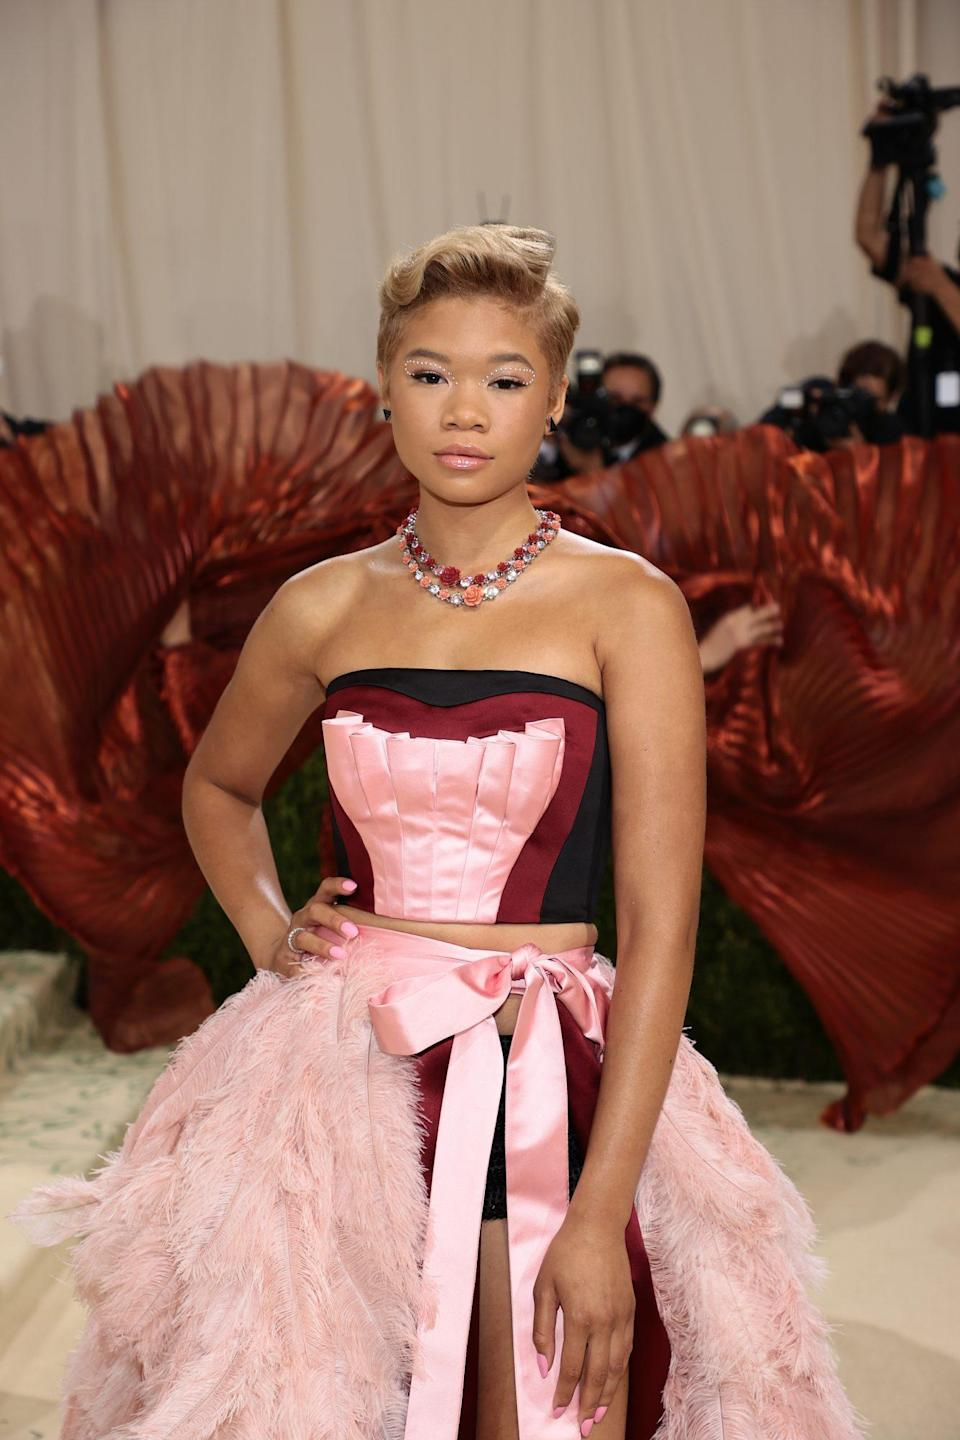 """<p>Storm Reid's honey blonde pixie cut, crafted by hairstylist <a href=""""https://www.instagram.com/greg_gilmore/"""" rel=""""nofollow noopener"""" target=""""_blank"""" data-ylk=""""slk:Greg Gilmore"""" class=""""link rapid-noclick-resp"""">Greg Gilmore</a>, paired perfectly with her subtle yet ultra glam pearl-adorned eyes. The actor finished off the look with a glossy nude lip. All makeup was done by <a href=""""https://www.instagram.com/paulyblanch/"""" rel=""""nofollow noopener"""" target=""""_blank"""" data-ylk=""""slk:Paul Blanch"""" class=""""link rapid-noclick-resp"""">Paul Blanch</a> using Maybelline products. </p>"""